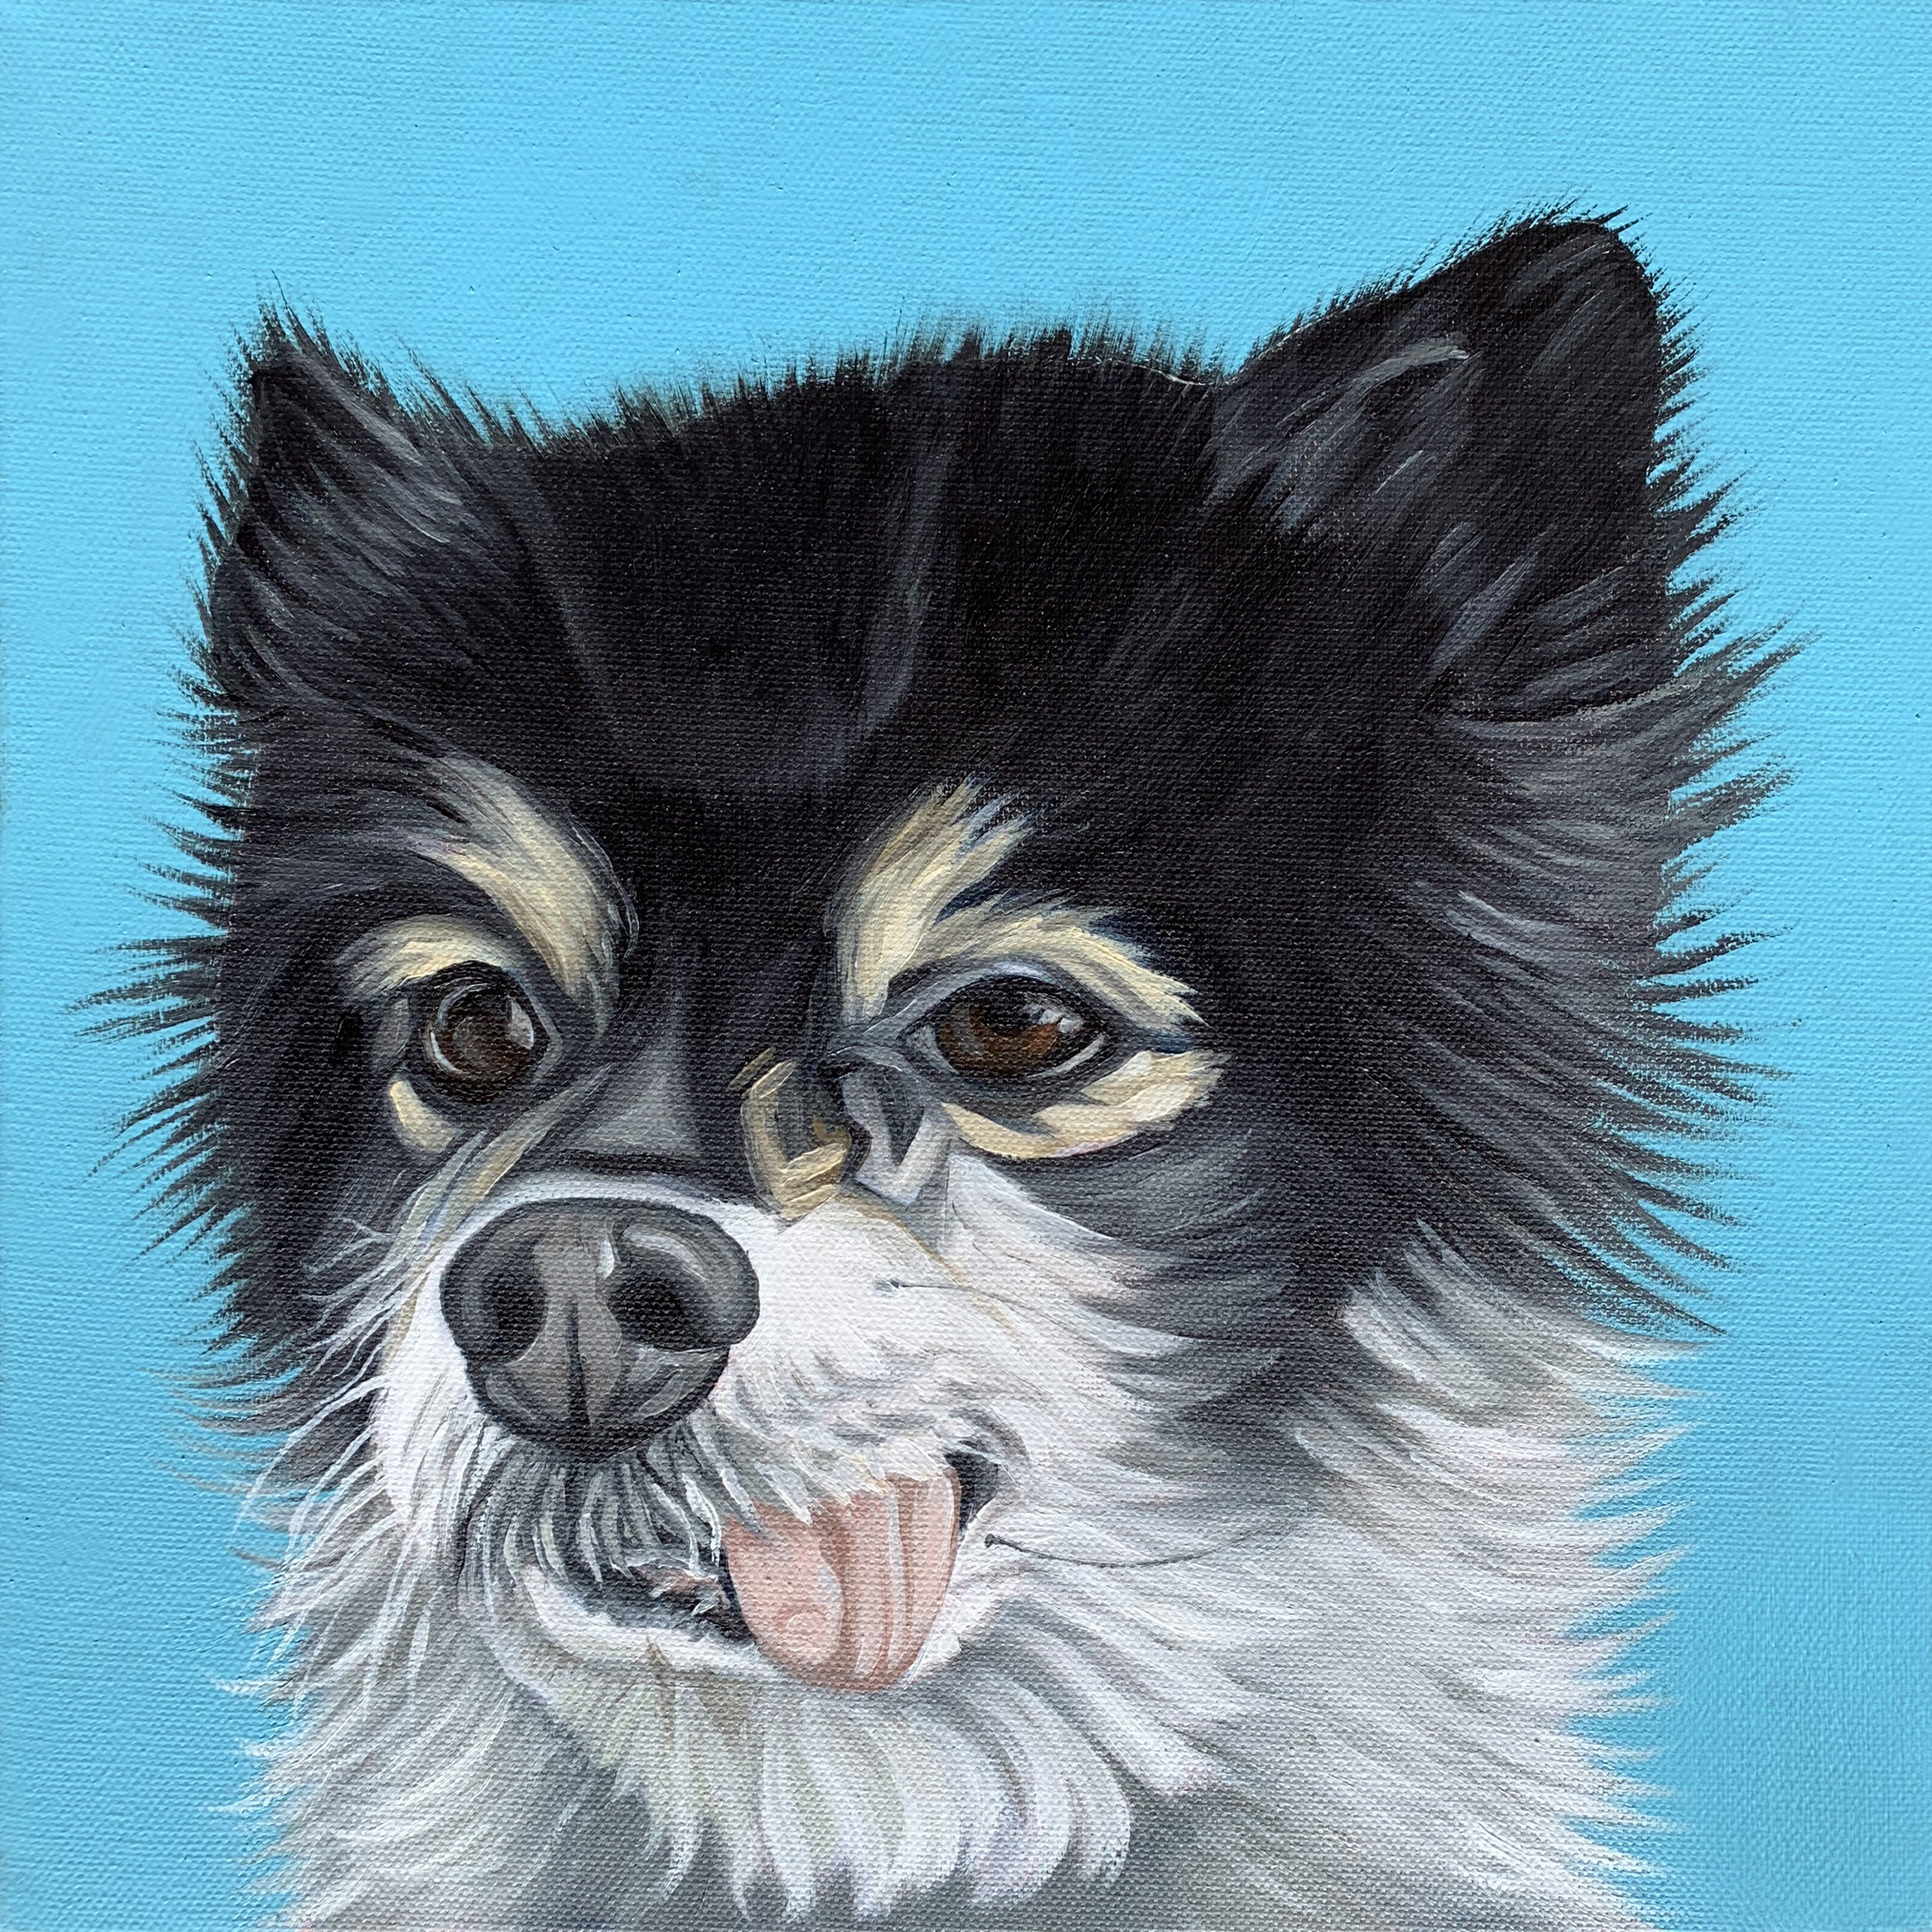 Recently completed for very happy clients. 'Frodo', oil on canvas.